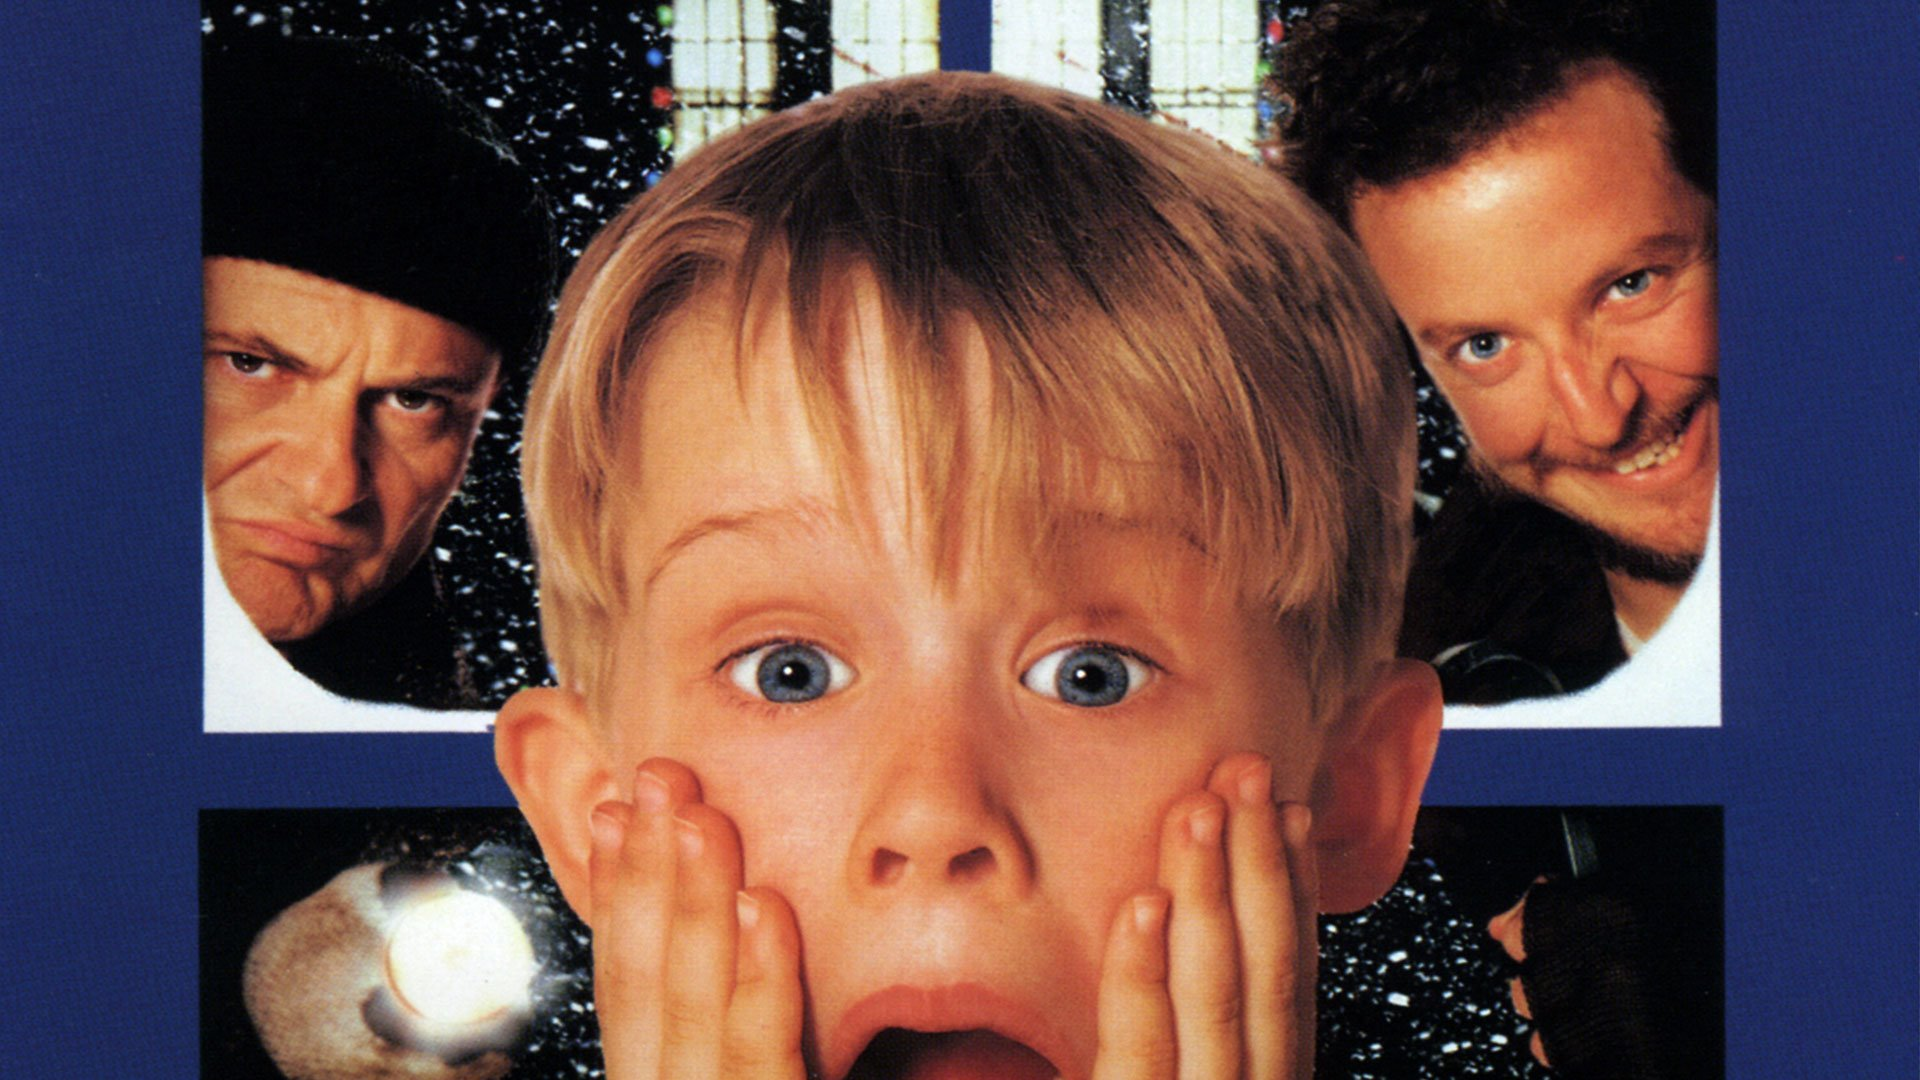 10 Home Alone Hd Wallpapers Background Images Wallpaper Abyss